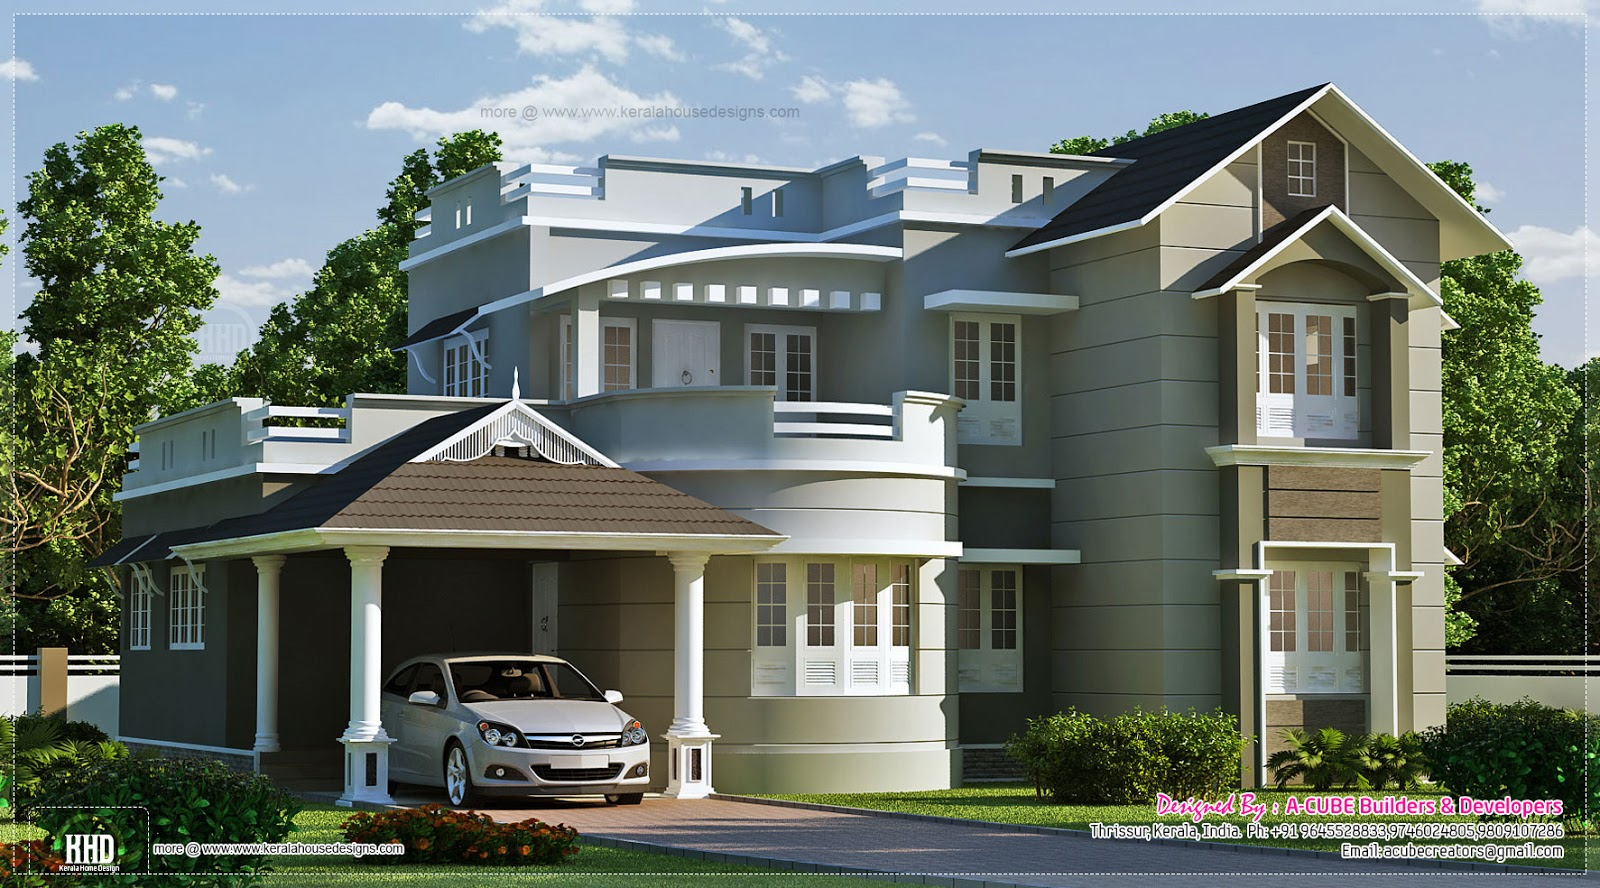 April 2013 kerala home design and floor plans for Kerala house design plans